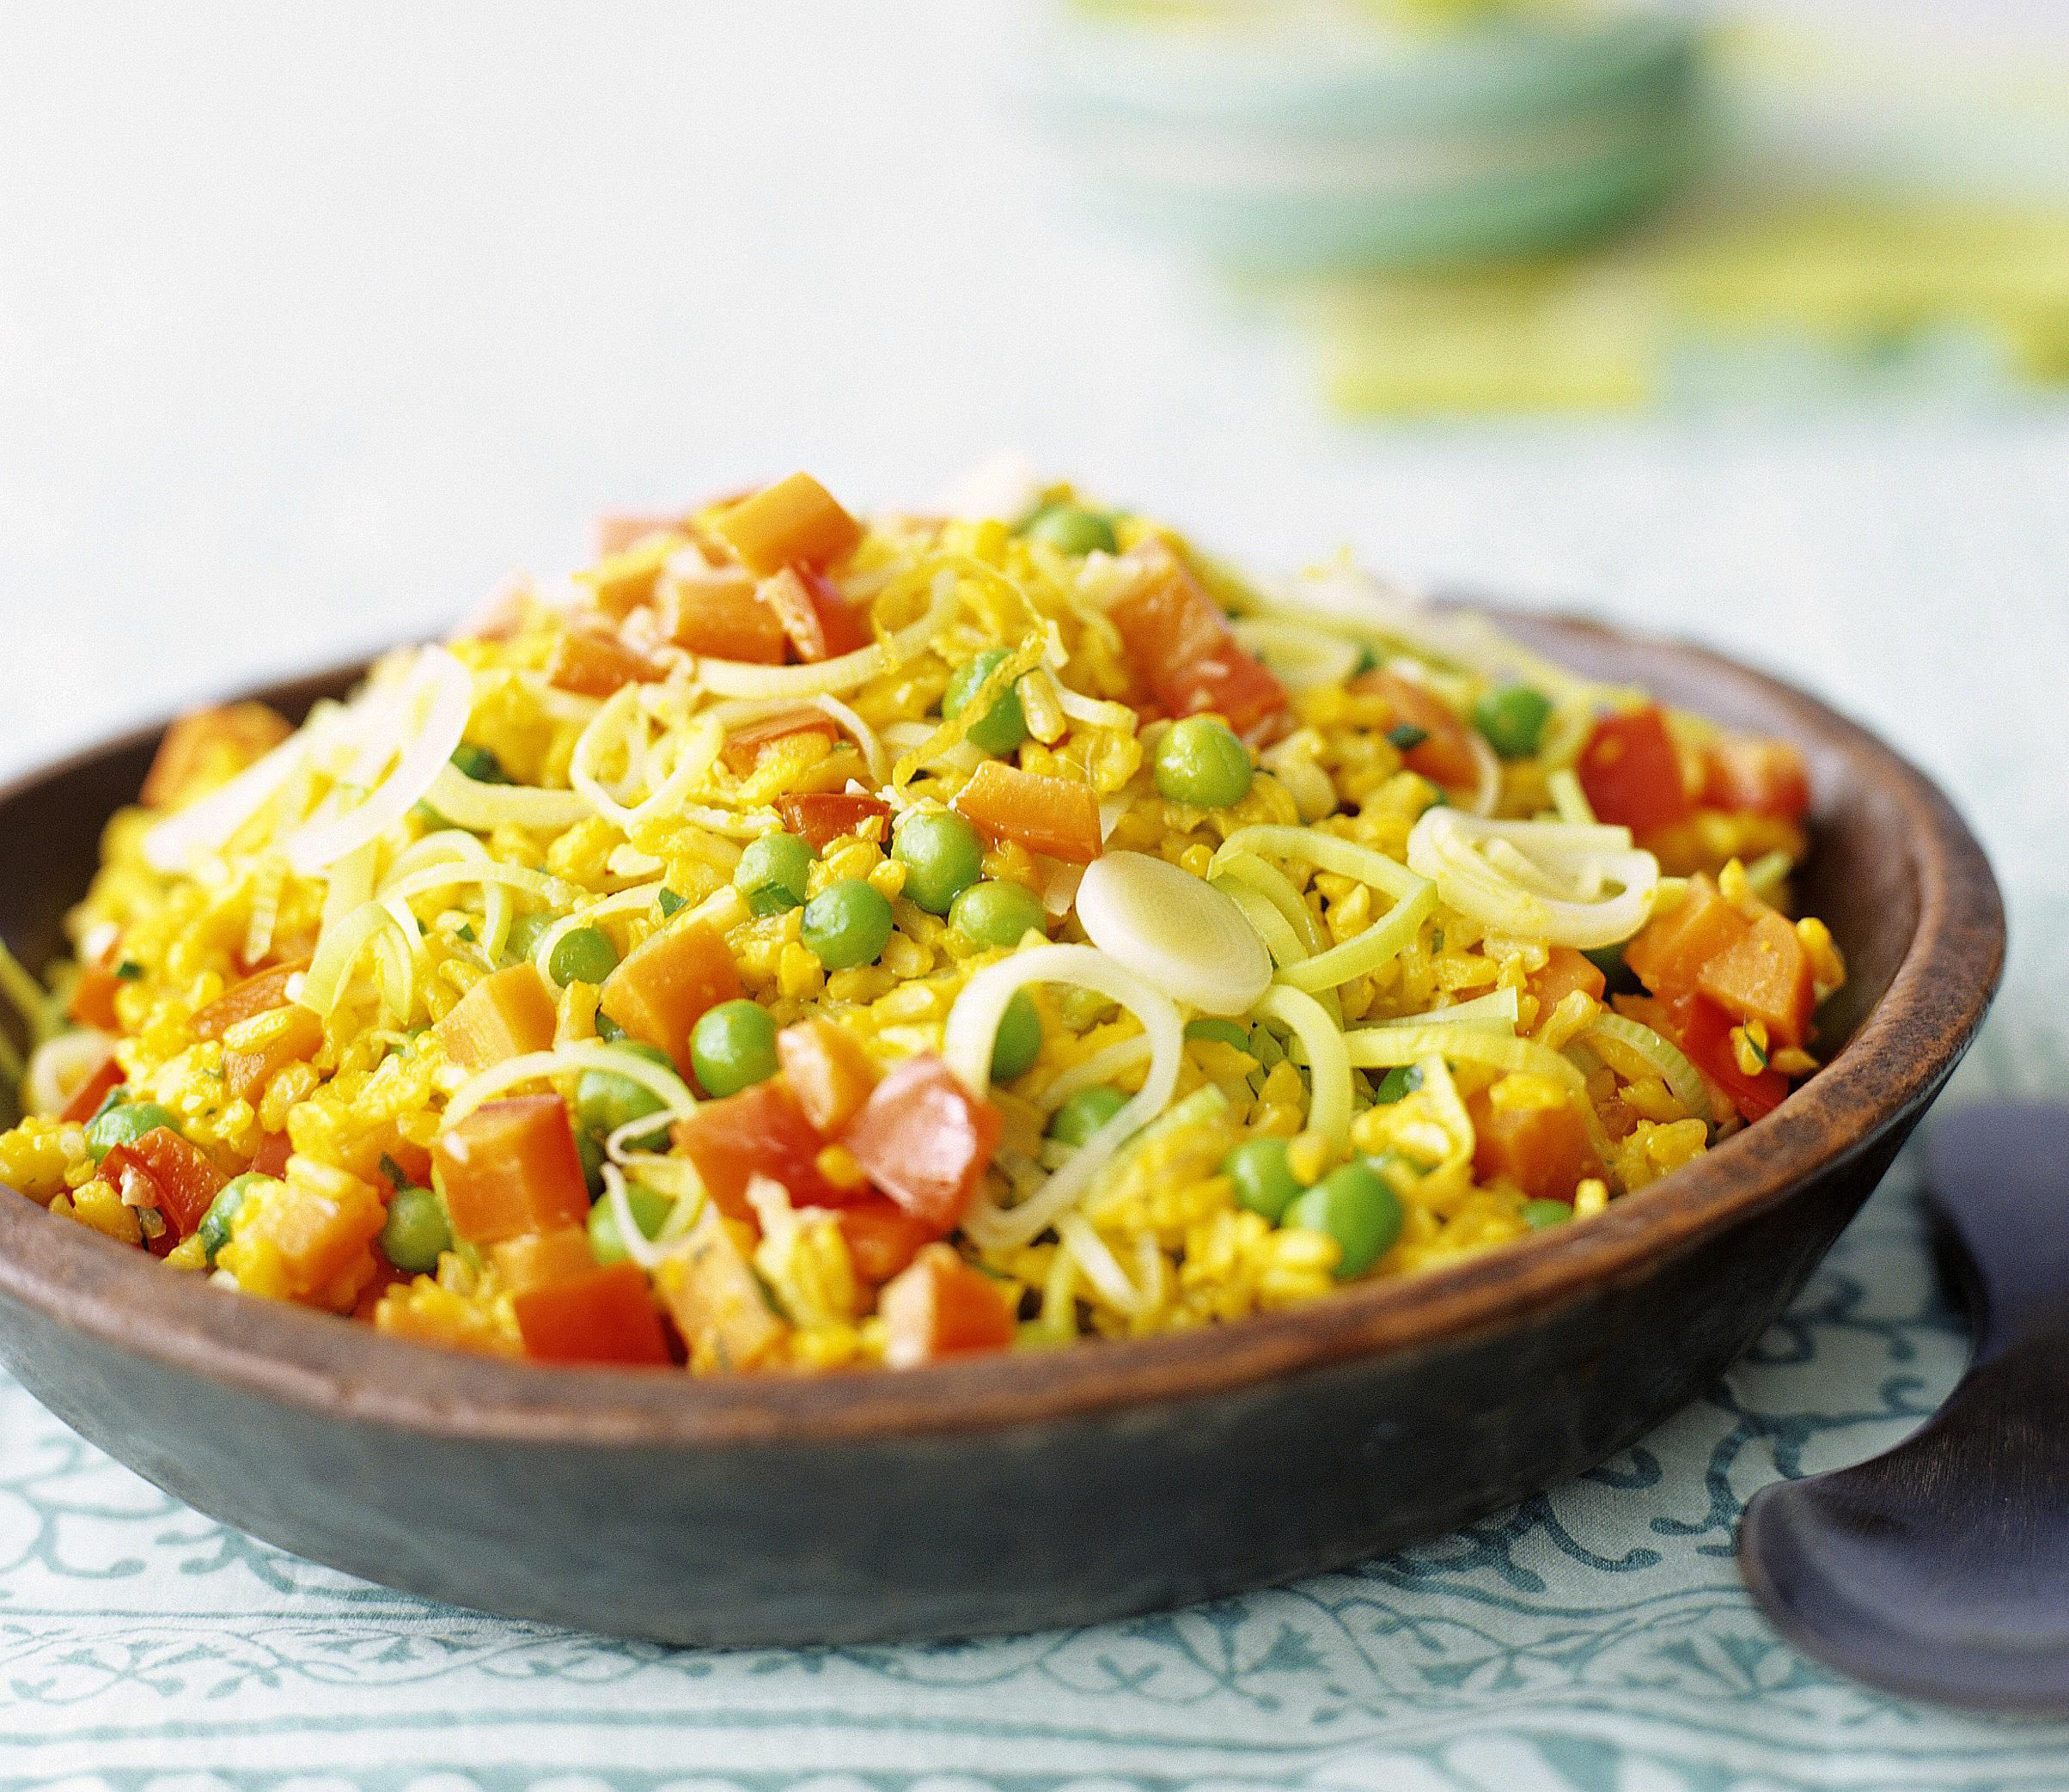 Saffron Rice Pilaf With Vegetables